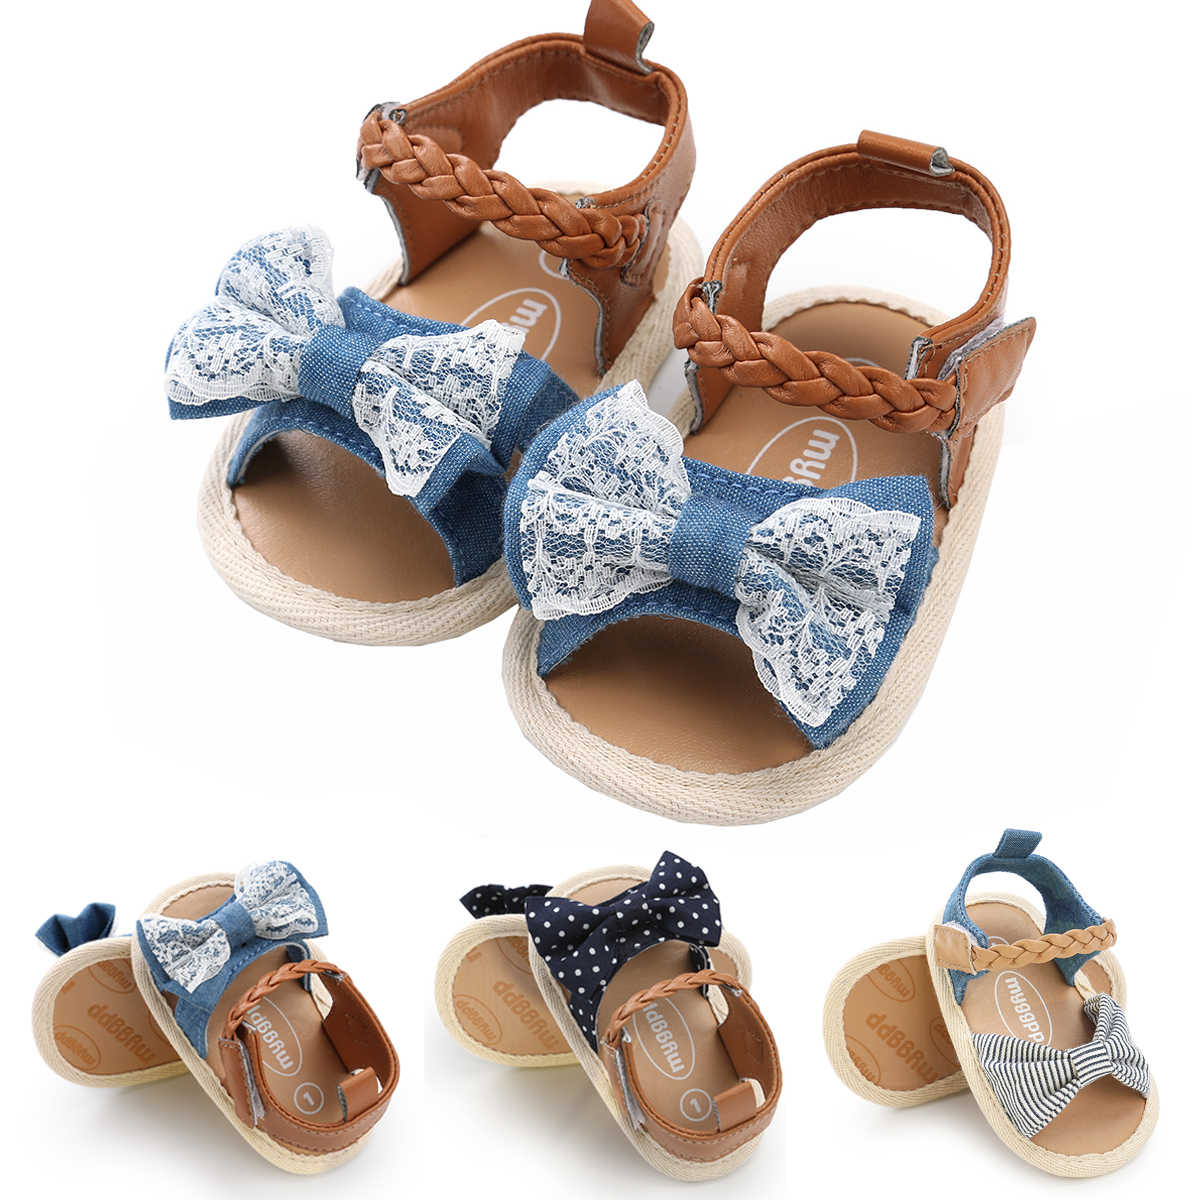 031ca6ad63ace 2018 New Sweet Newborn Baby Kid Girl Leather Princess Sandals Soft Crib Bow Shoes  Toddler Prewalker